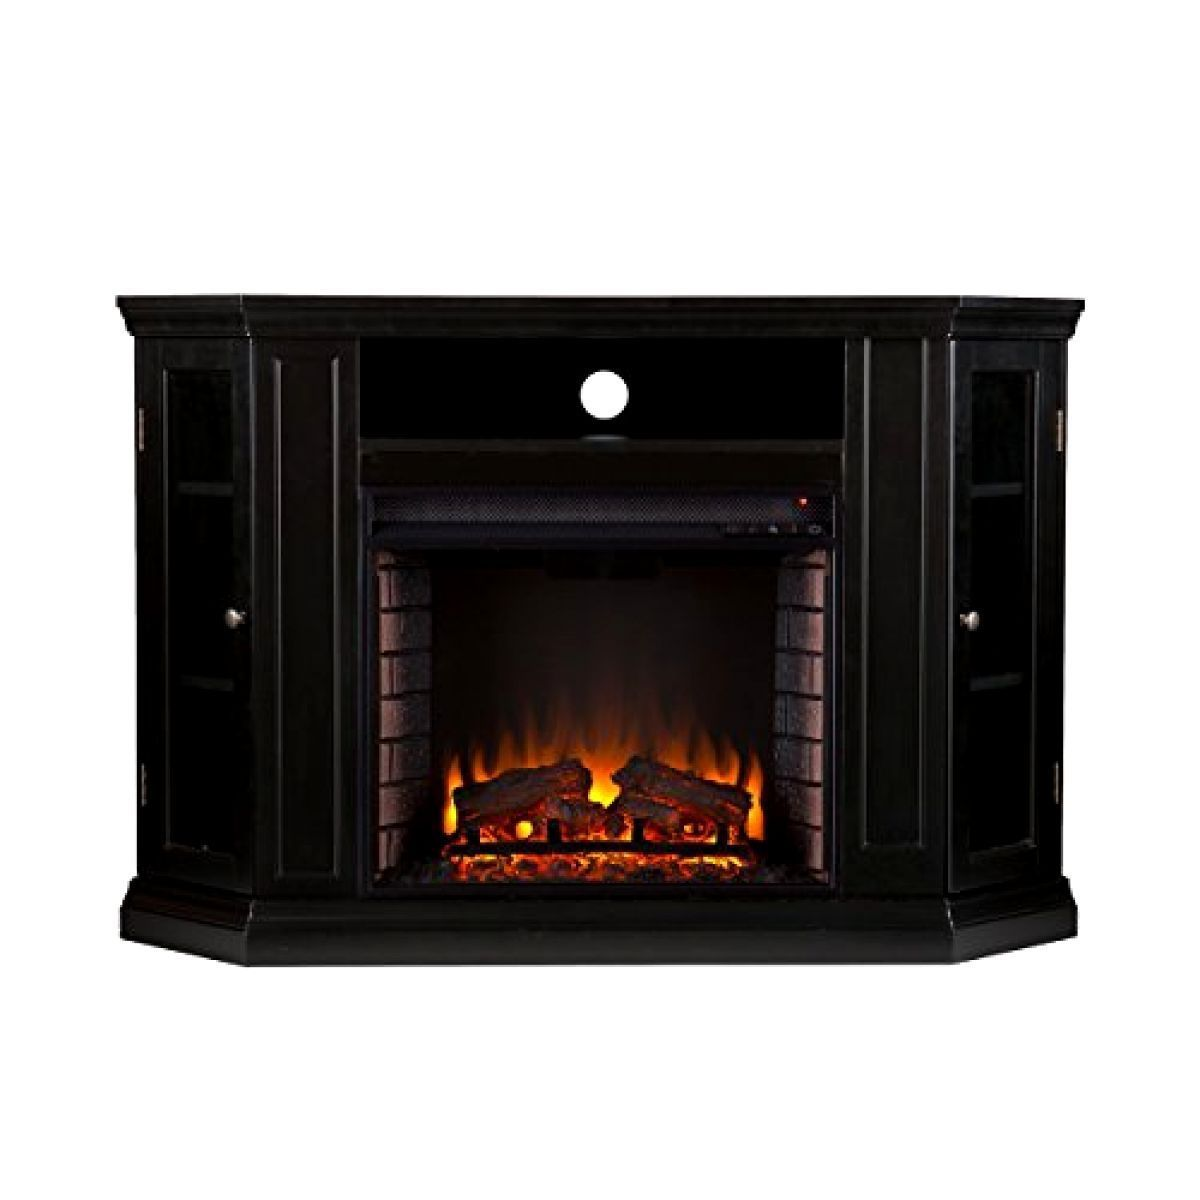 Television Claremont Convertible Media Electric Fireplace Black Storage Fireplaces